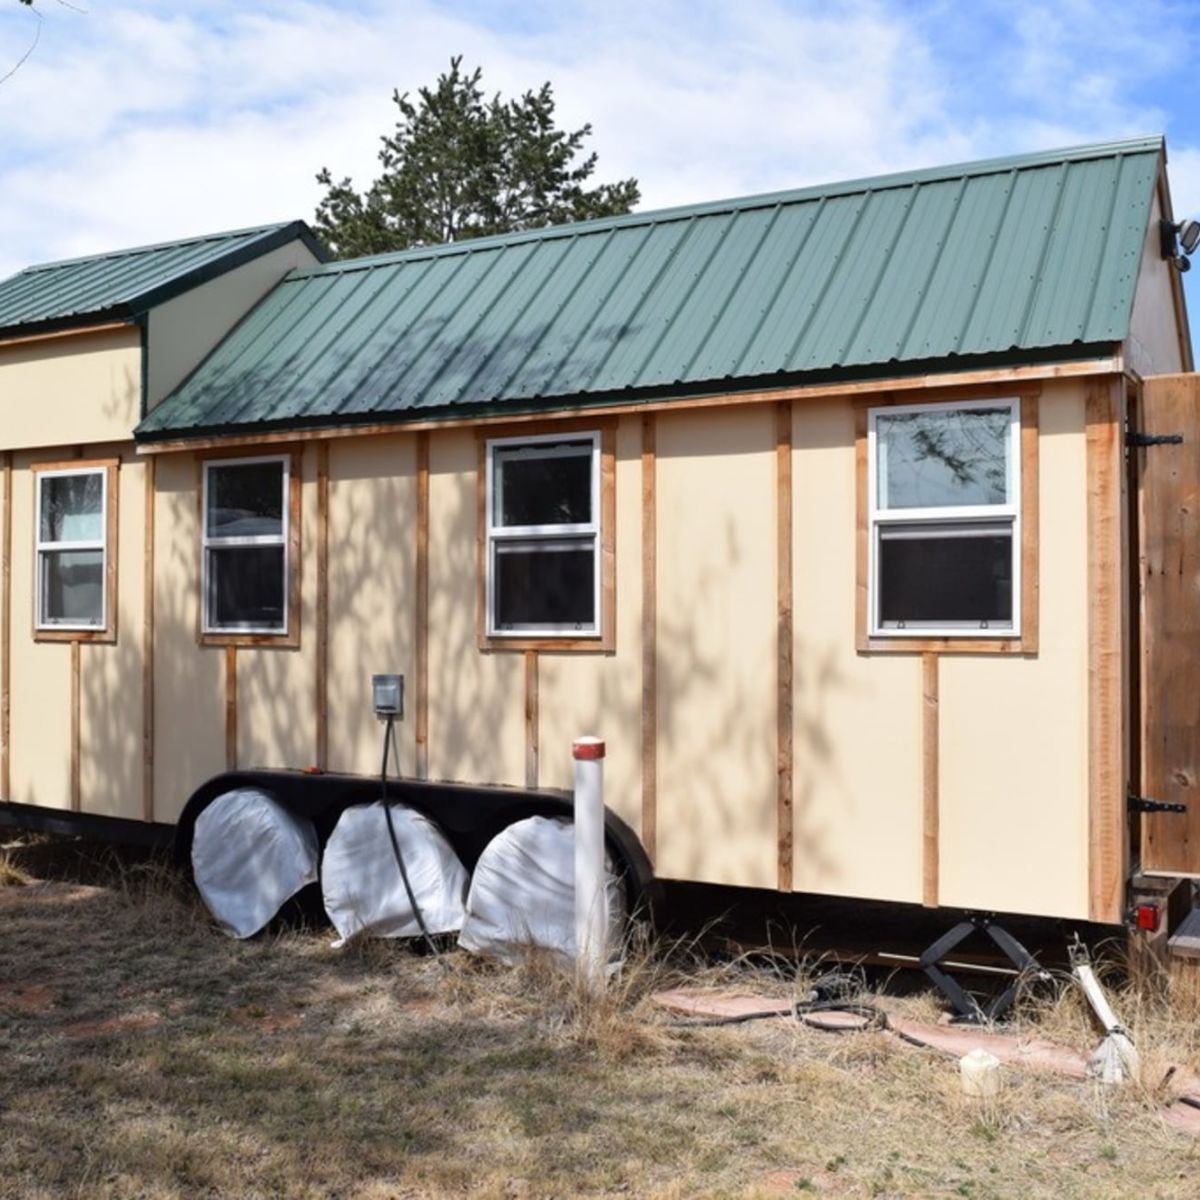 Selling My Tiny House On Wheels Tiny House For Sale In Tucson